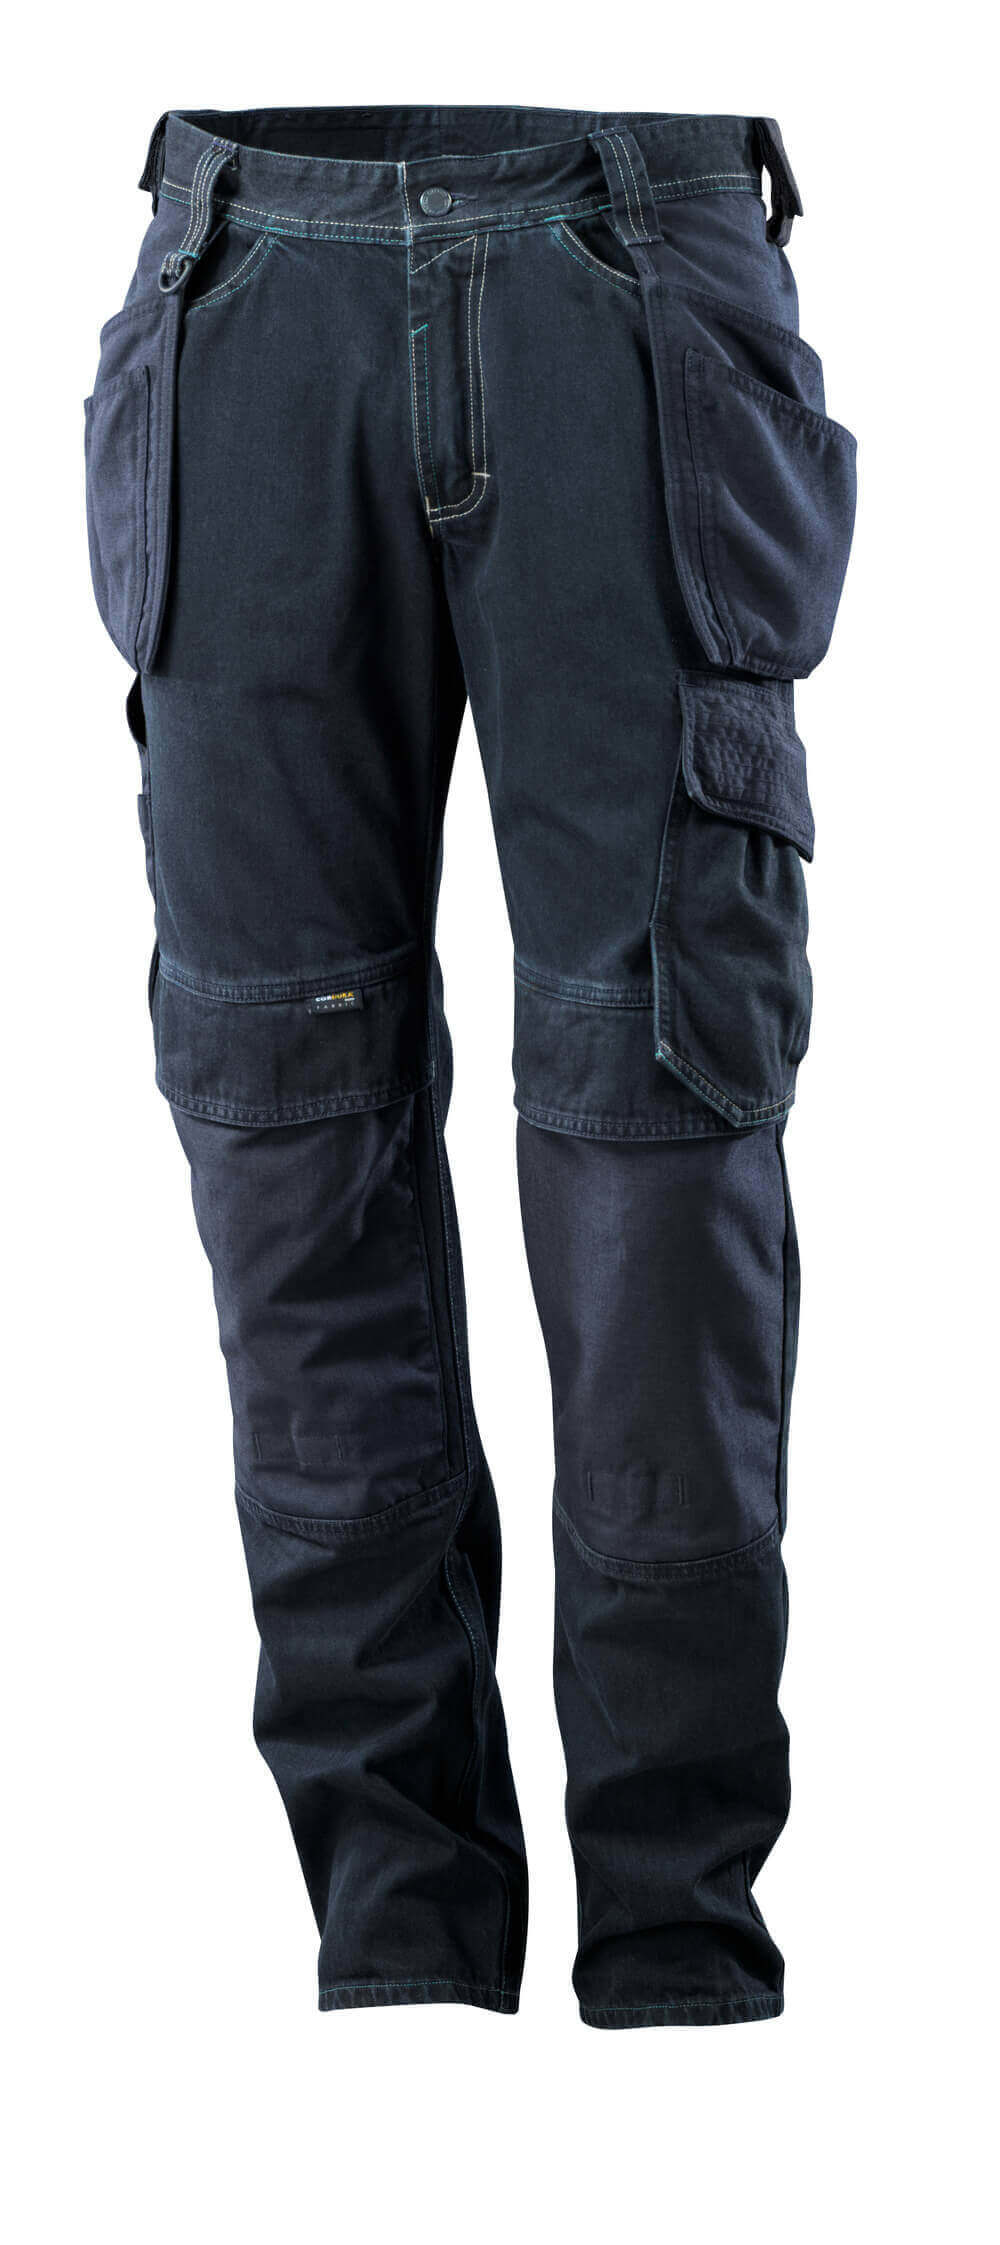 Jeans w. holster pockets, extra durable